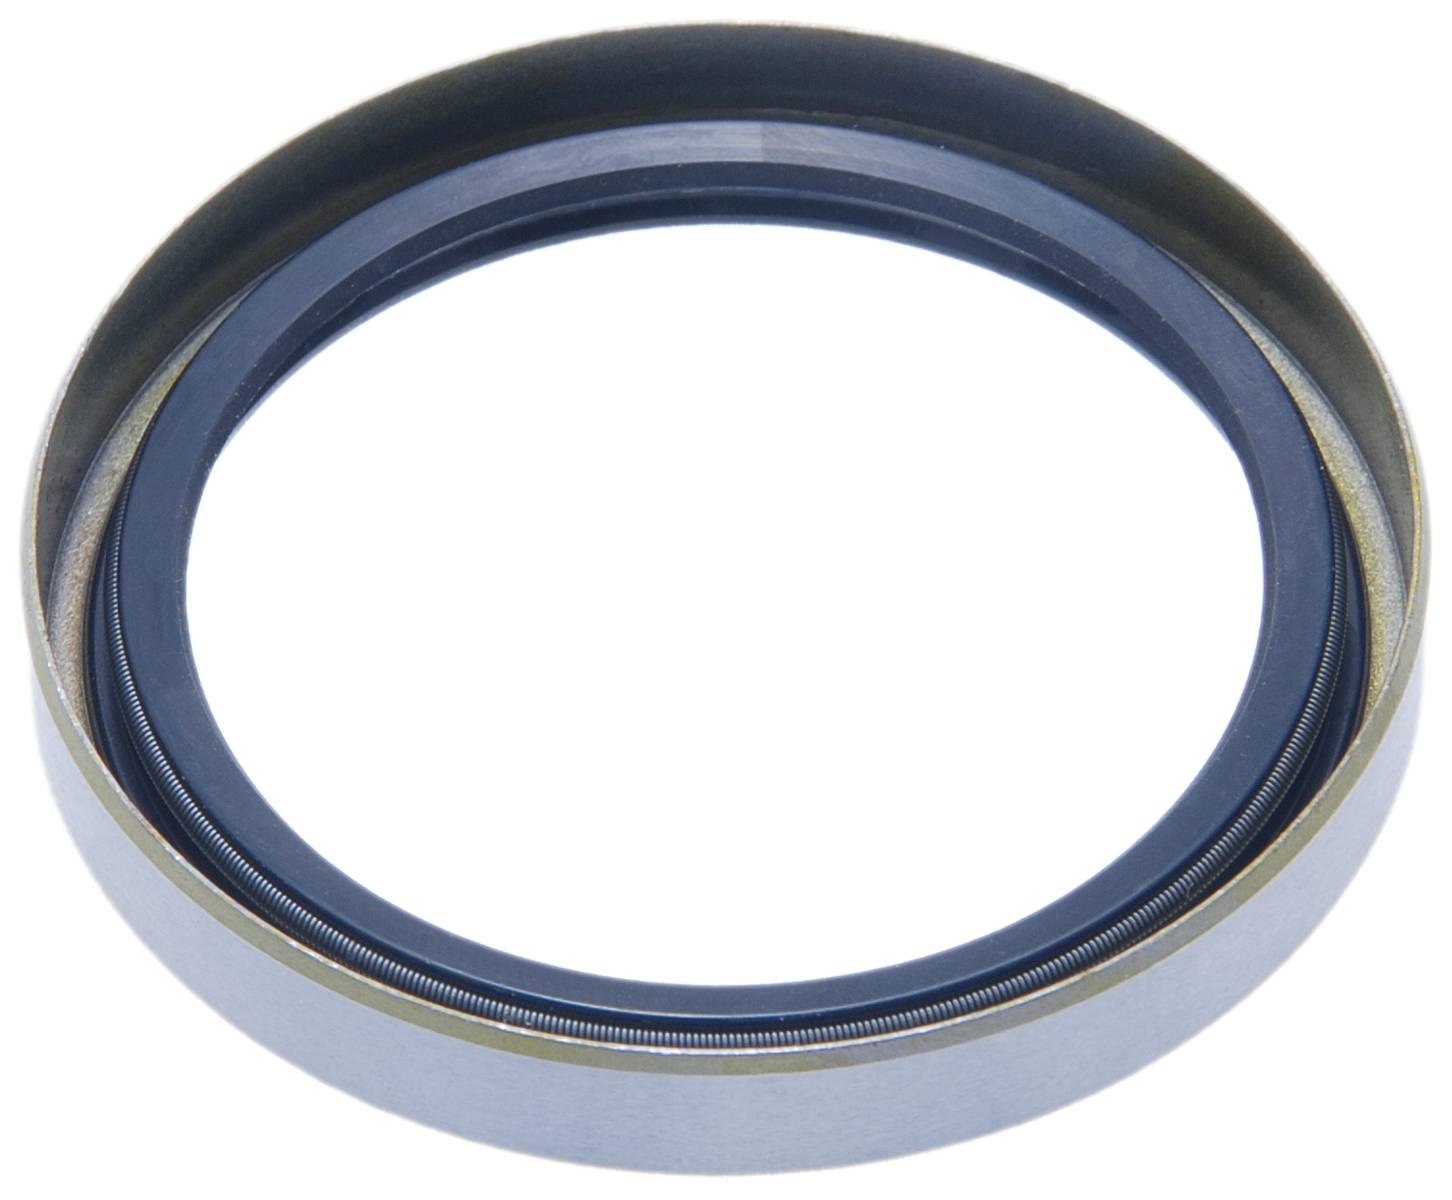 Febest 1990 Toyota Corolla - Wheel Seal FEBEST # 95GDY-51650909X OEM # 90311-52059 at Sears.com